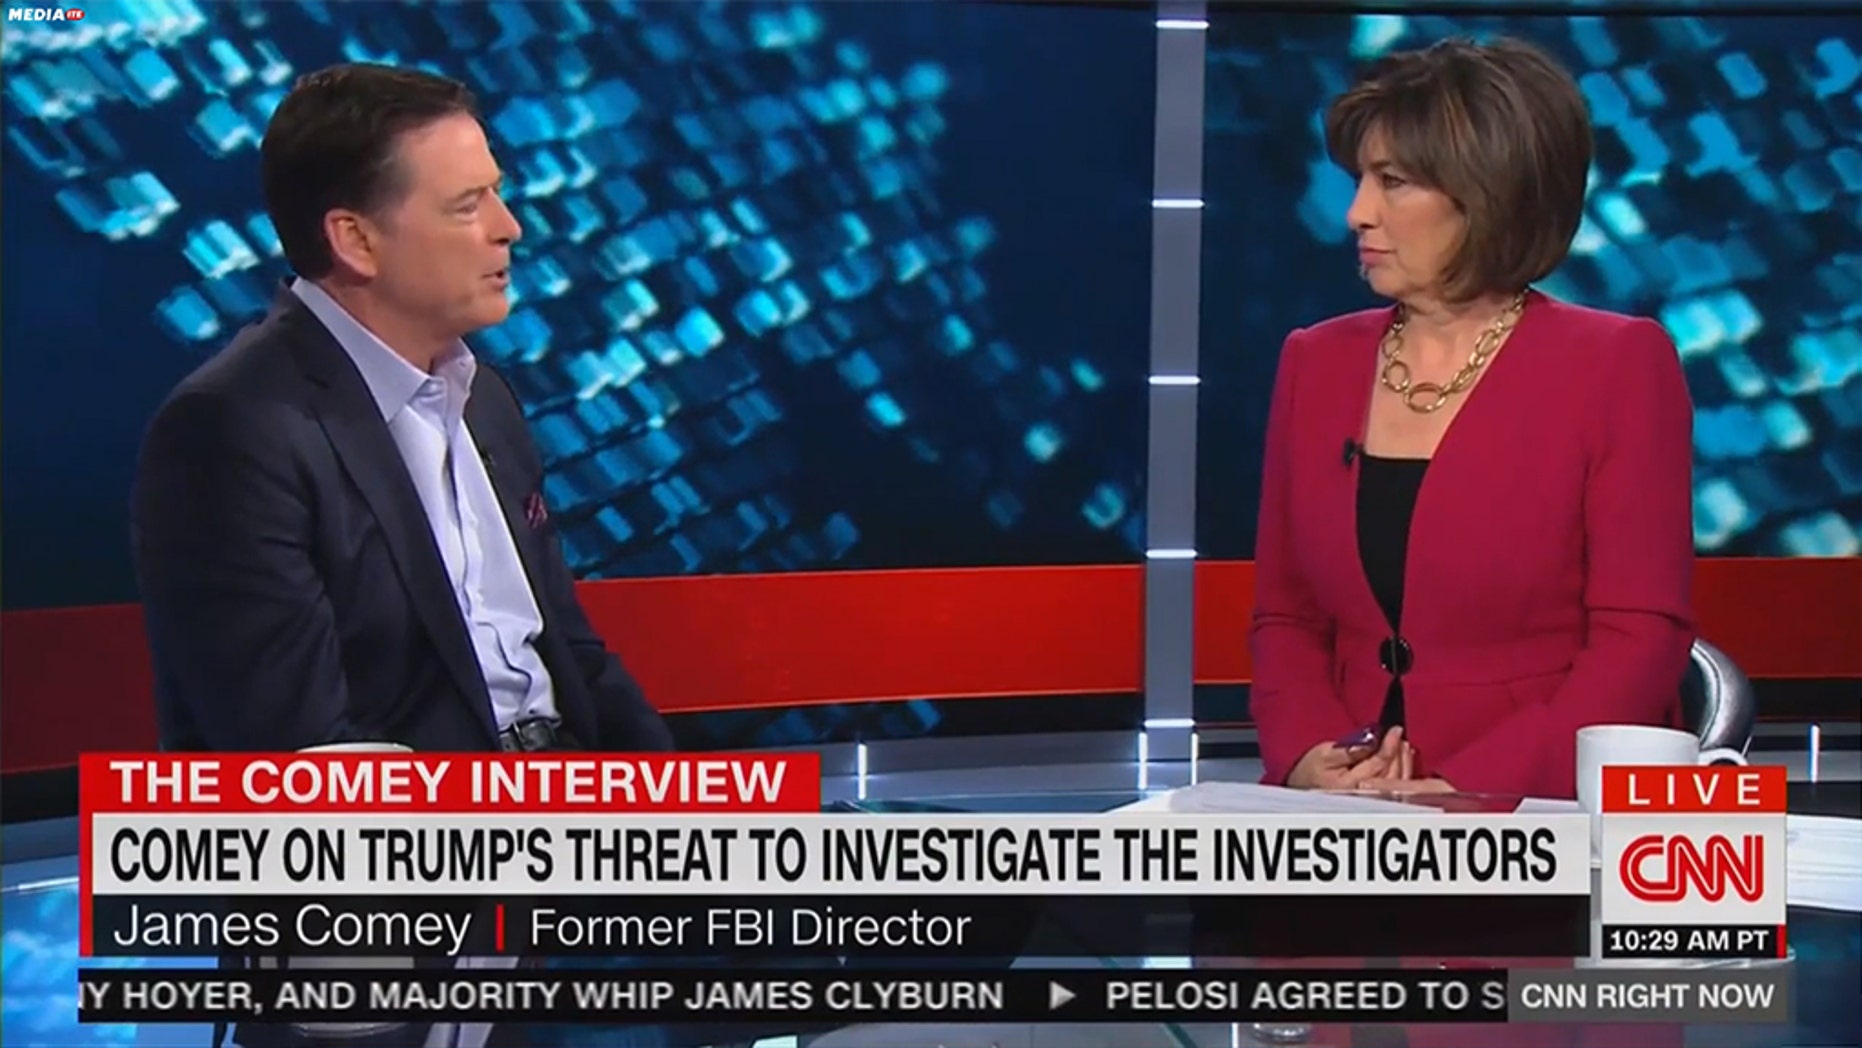 """During her interview with former FBI directorJames Comey, CNN'sChristiane Amanpourasked him if he had wished the FBI """"shut down"""" the """"hate speech"""" coming from then-candidateDonald Trump's rallies during the 2016 presidential election. (CNN)"""